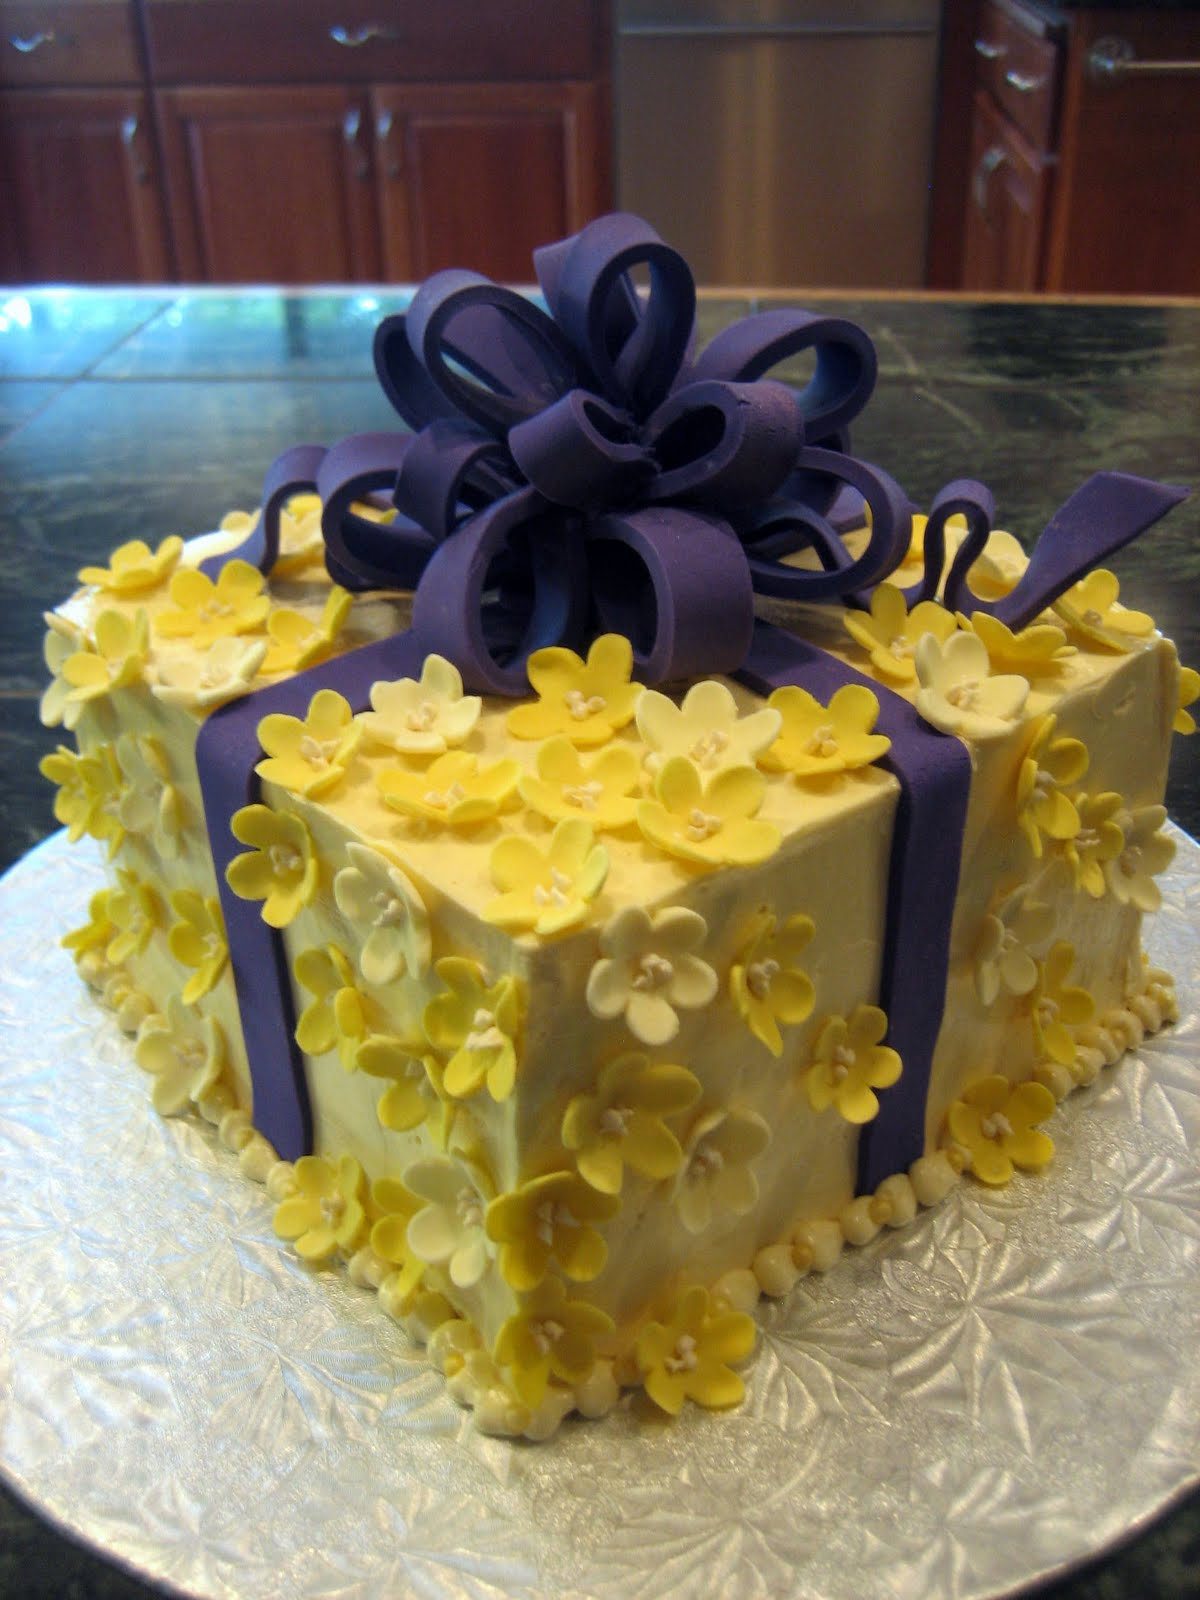 Jillicious Discoveries Surprise Birthday Gift Cake And Yes A